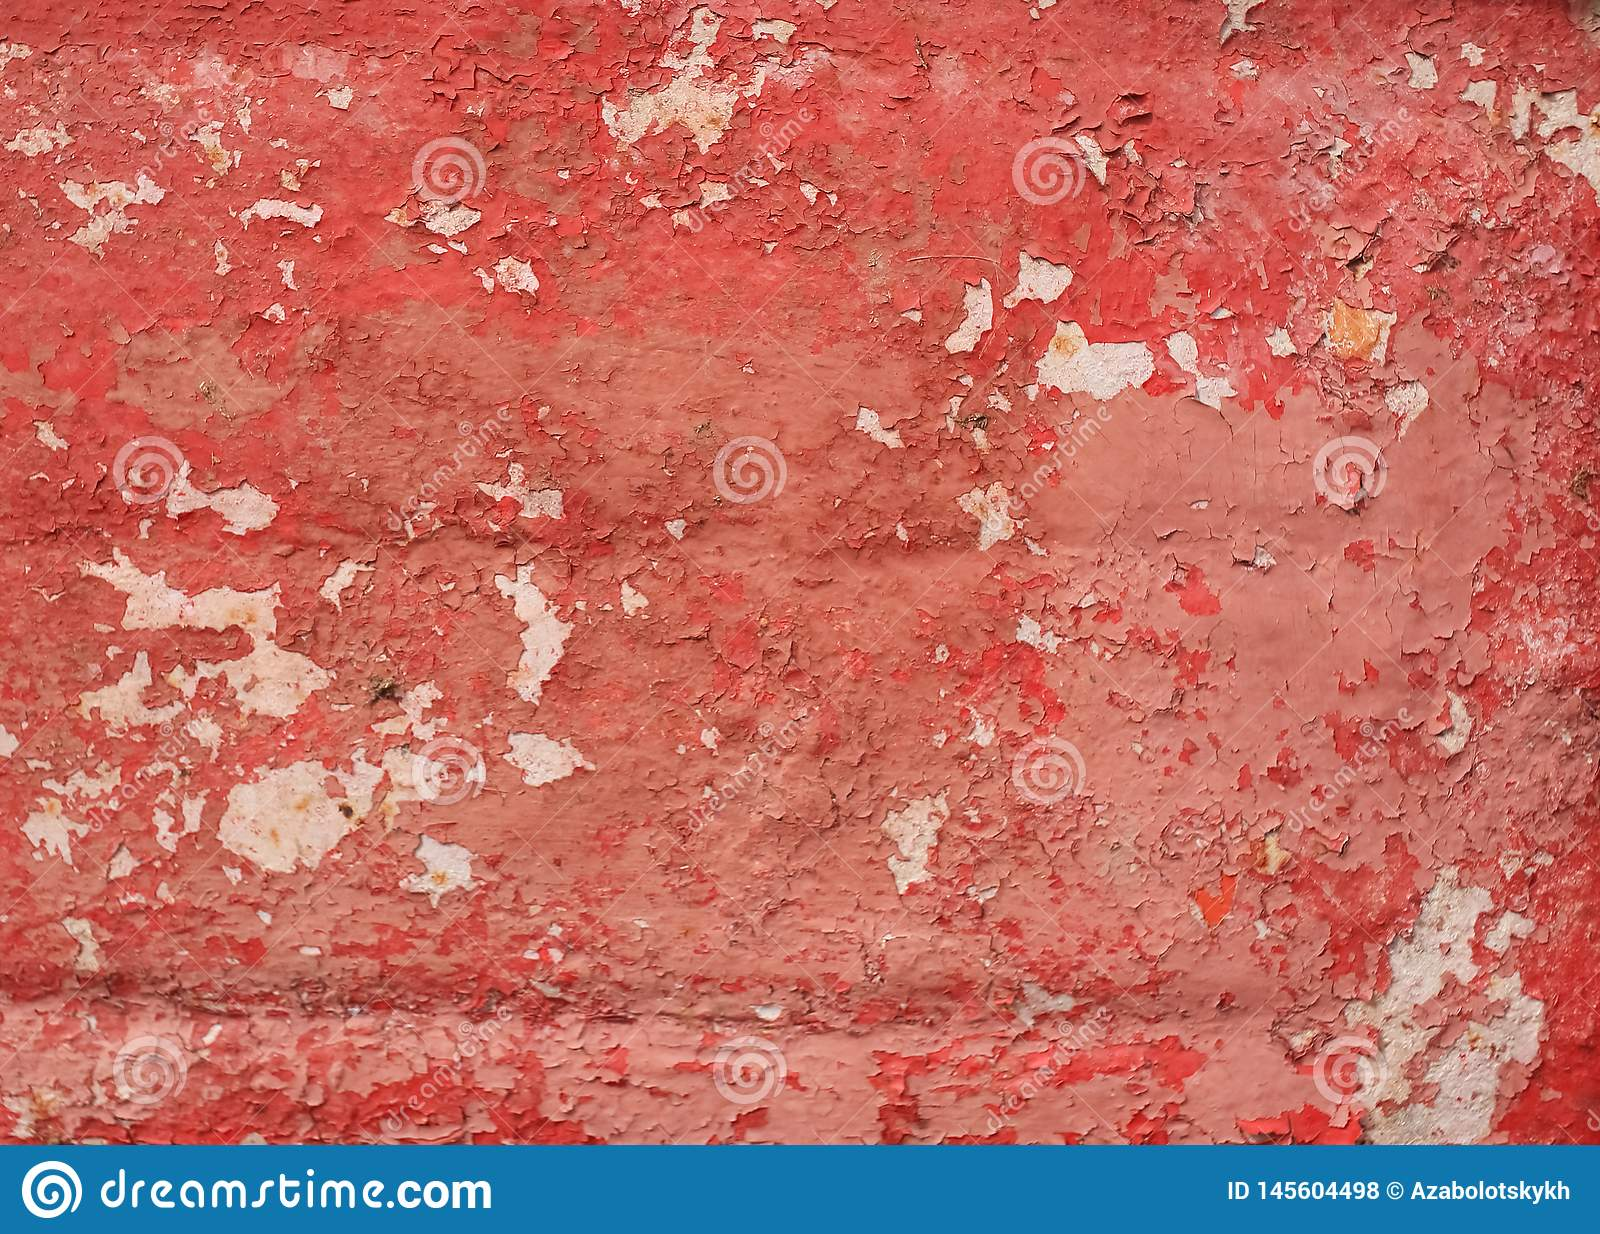 Texture of old red metal